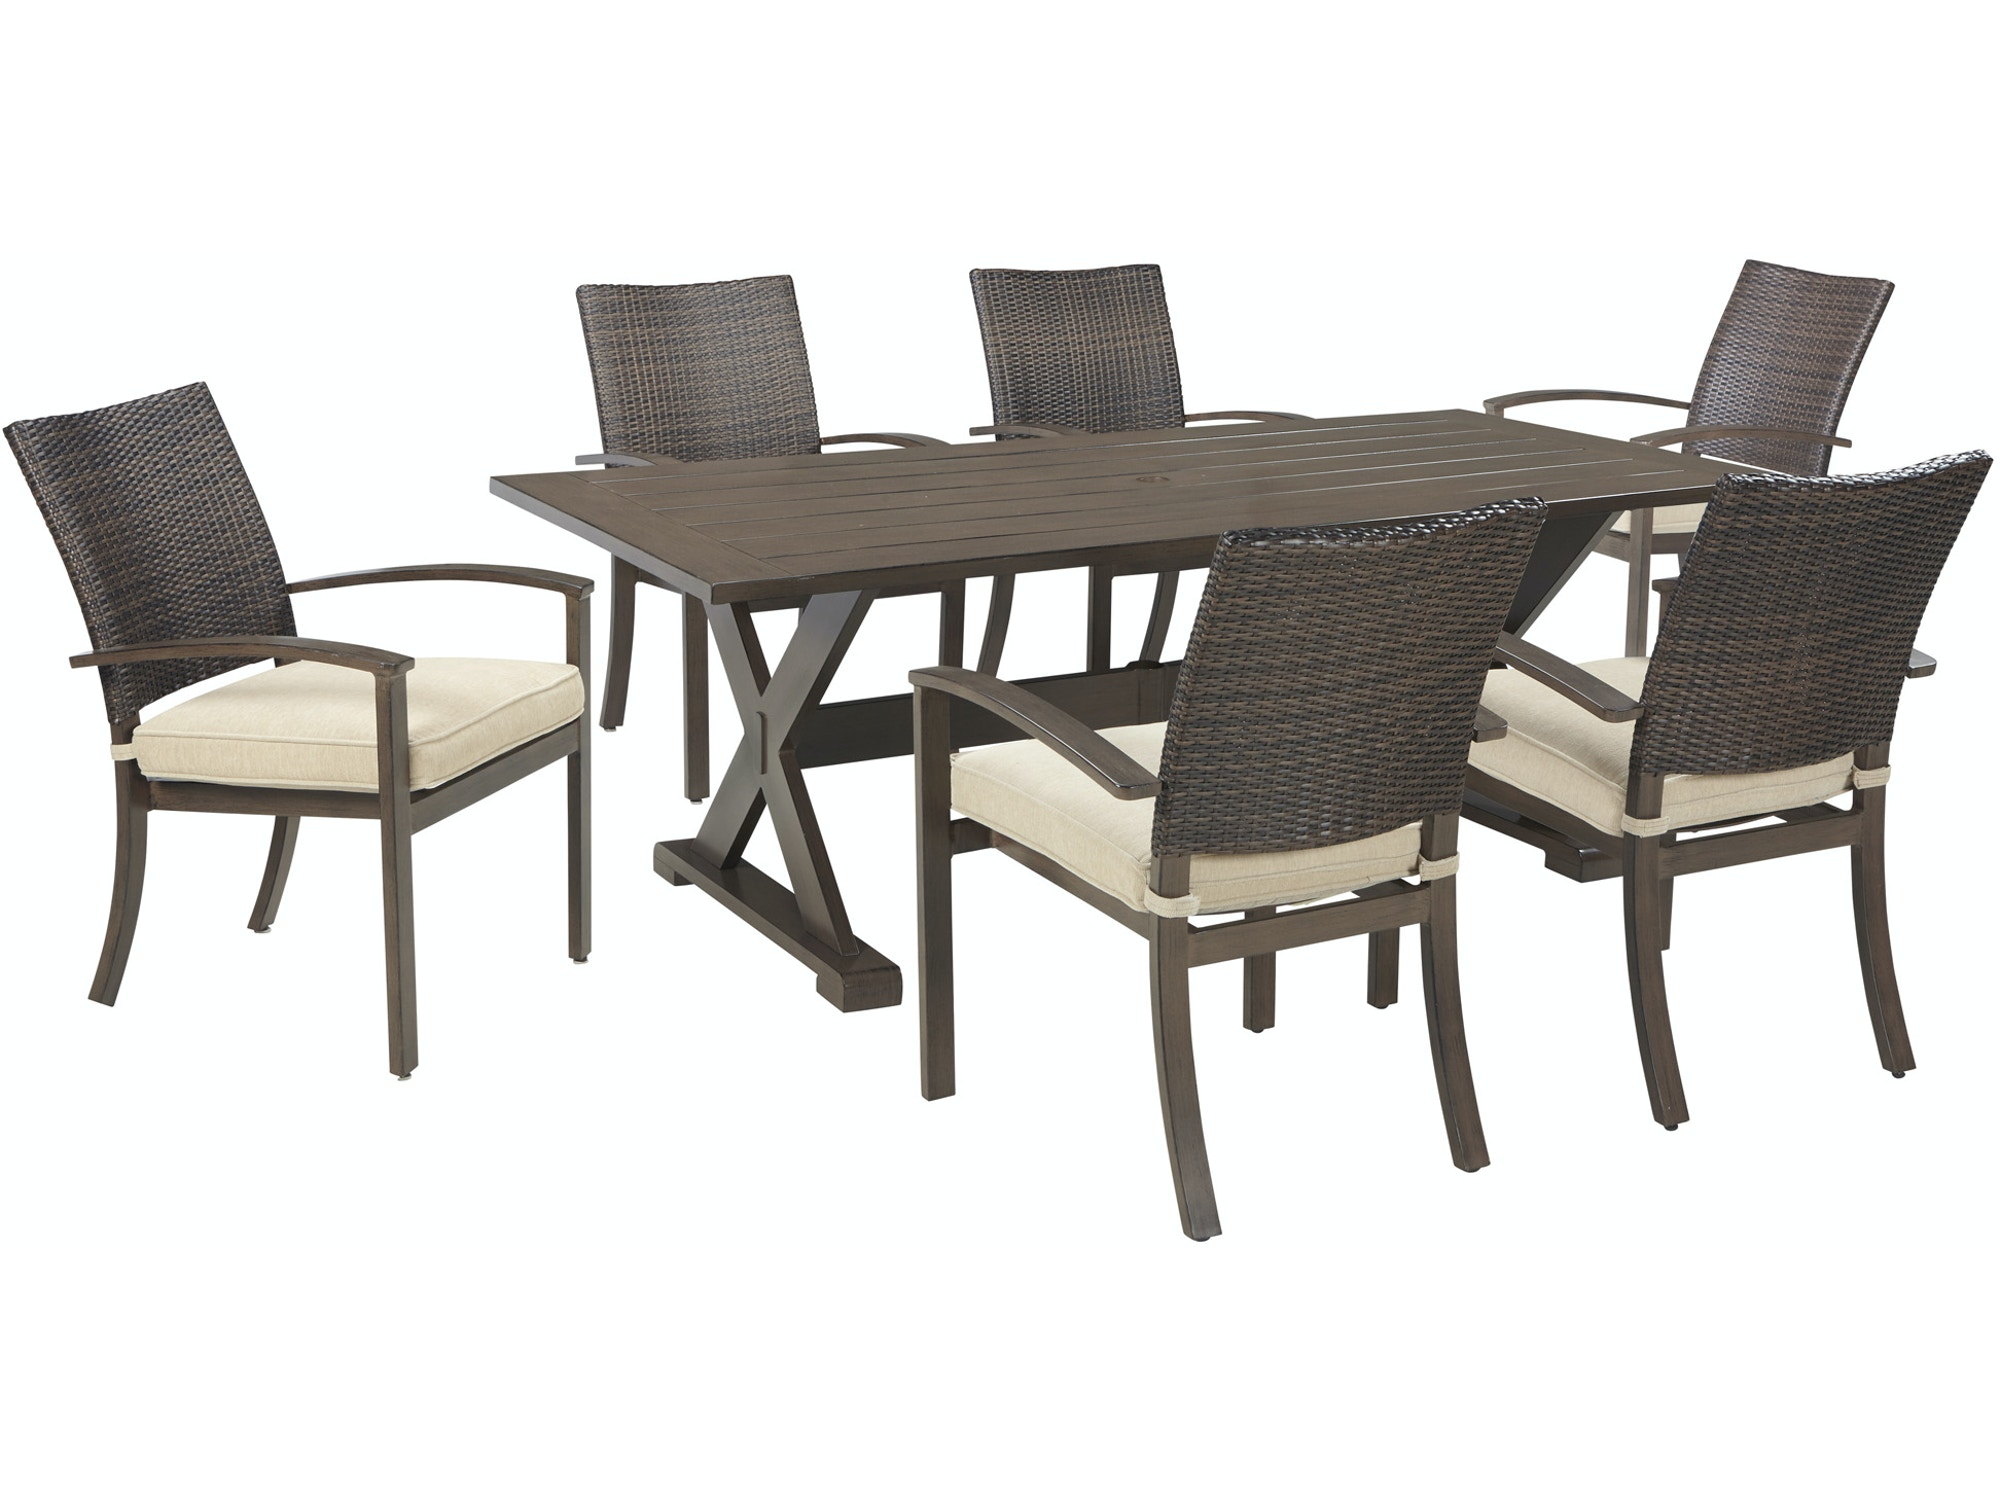 Moresdale 6-Seat Dining Set 637926